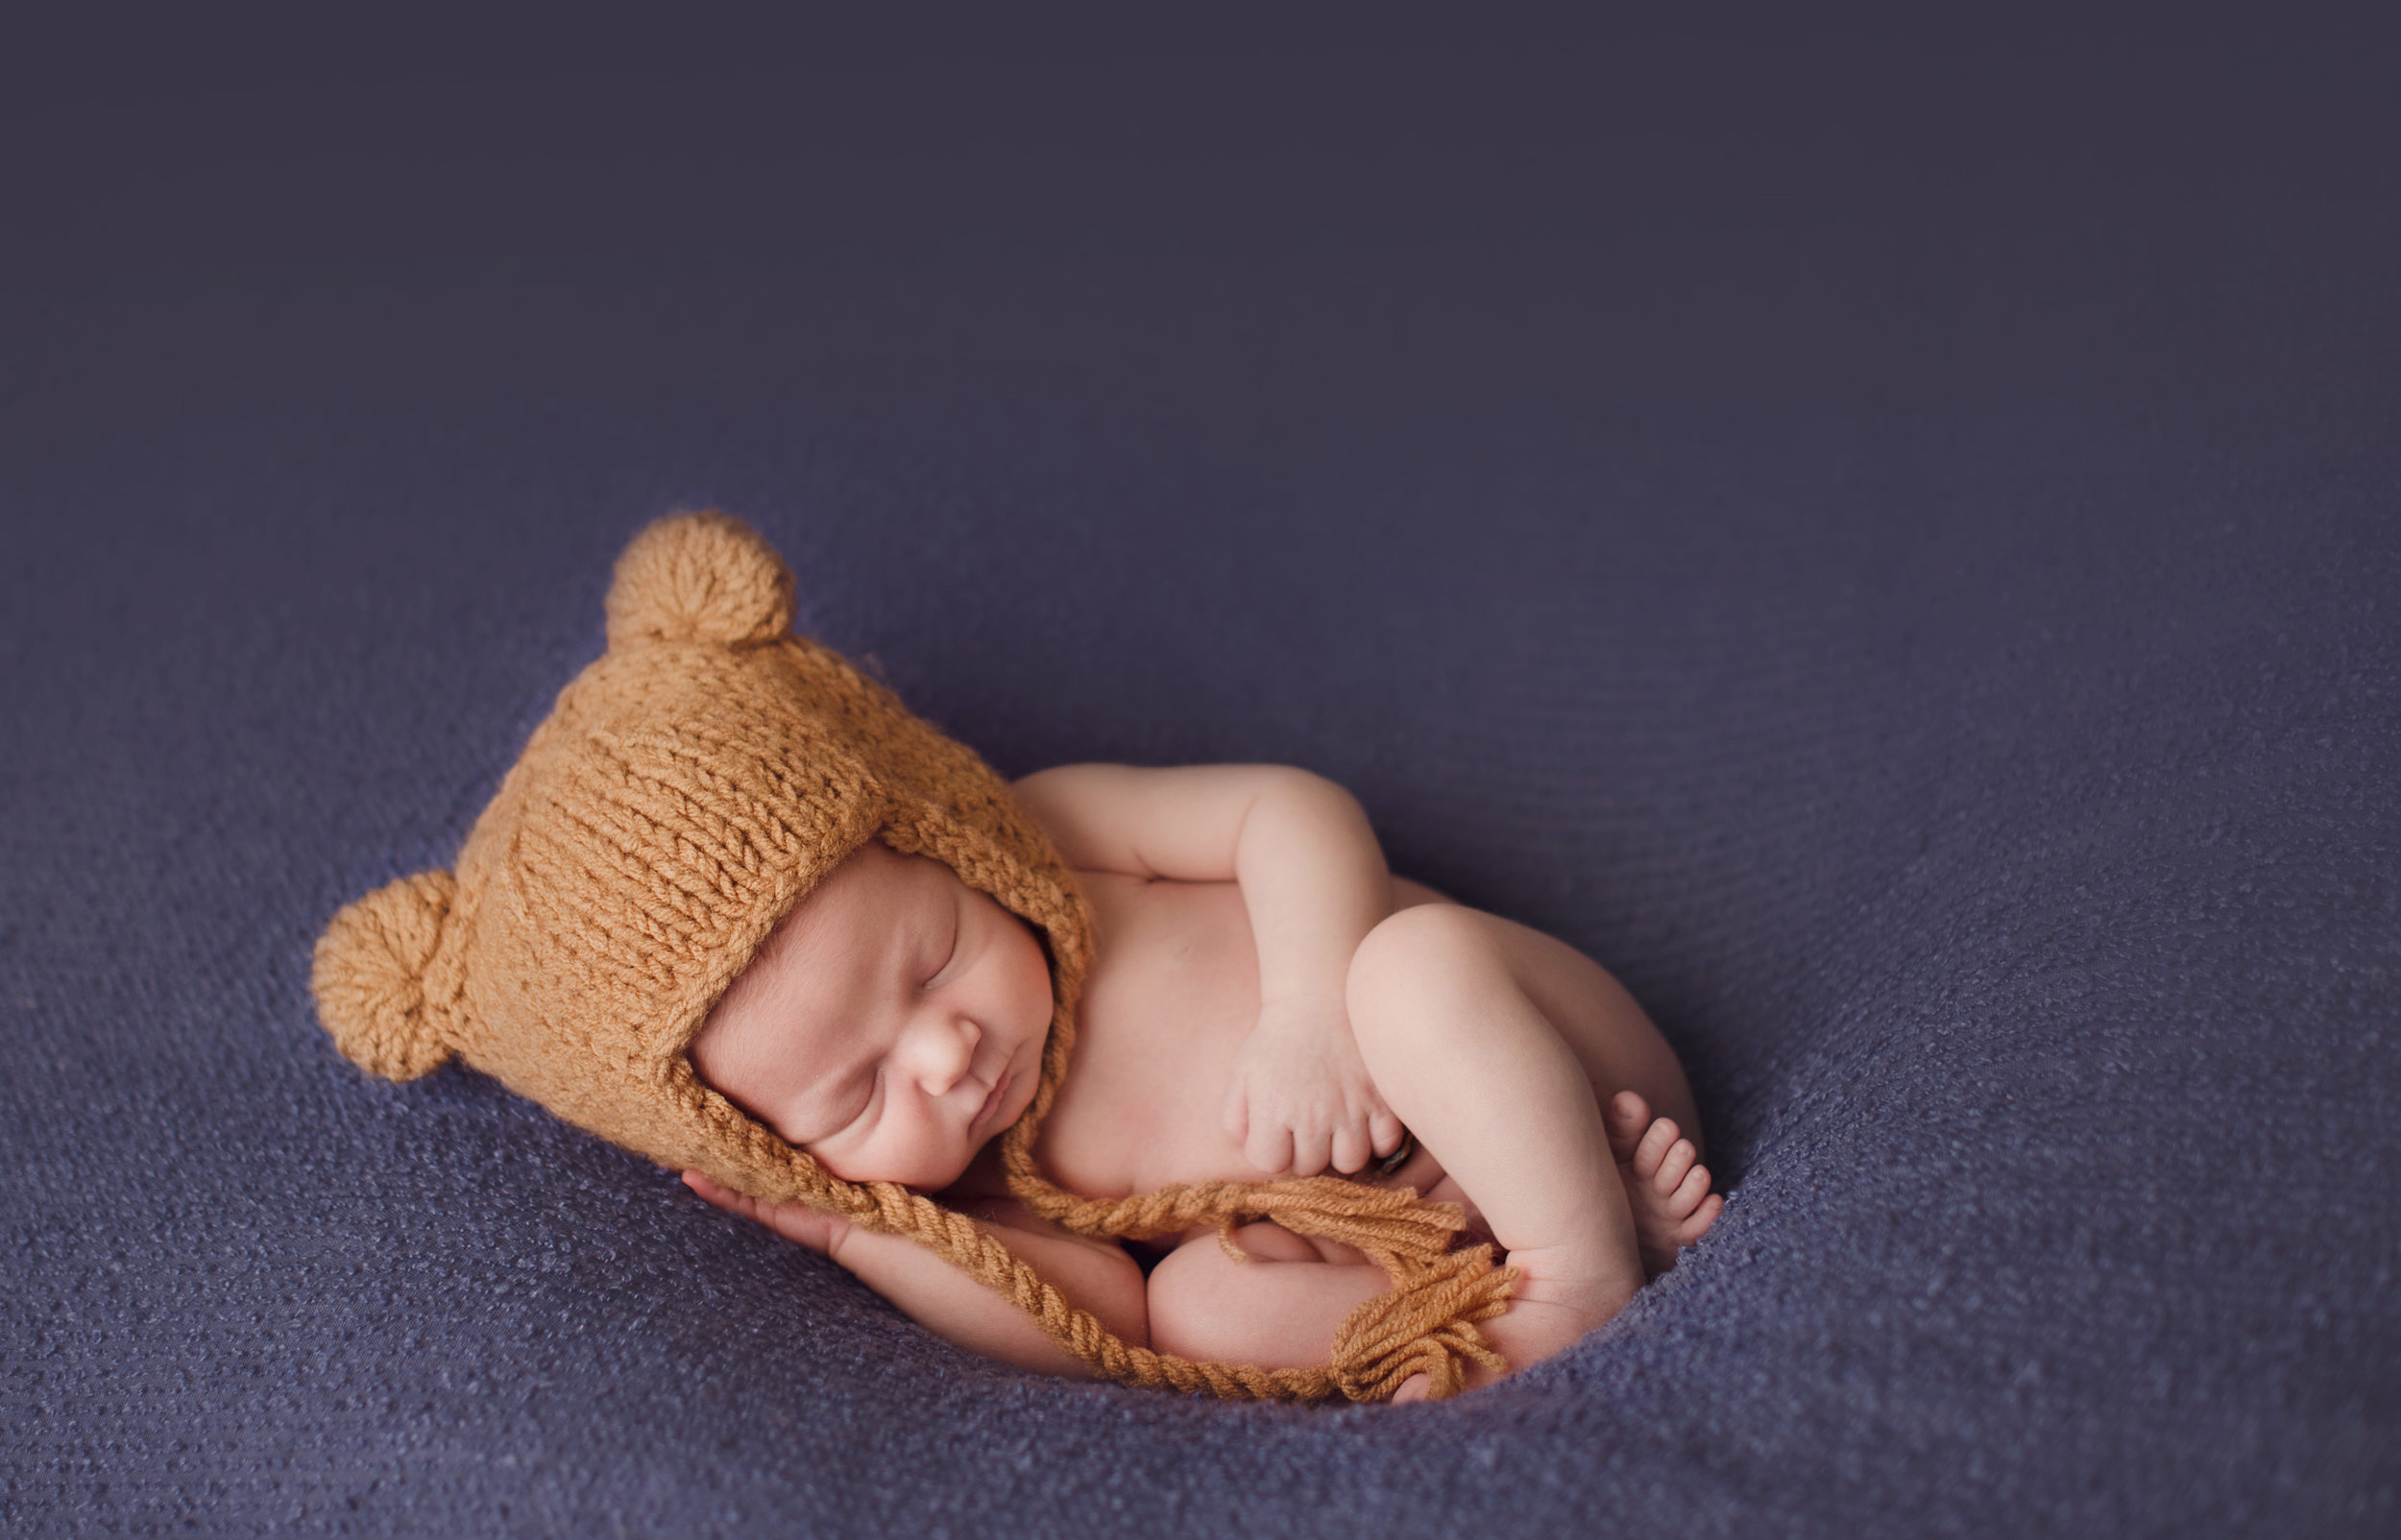 Baby-Photographer-Newborn-Photography-Bozeman-Billings-Montana-Tina-Stinson-Photography-2625.jpg